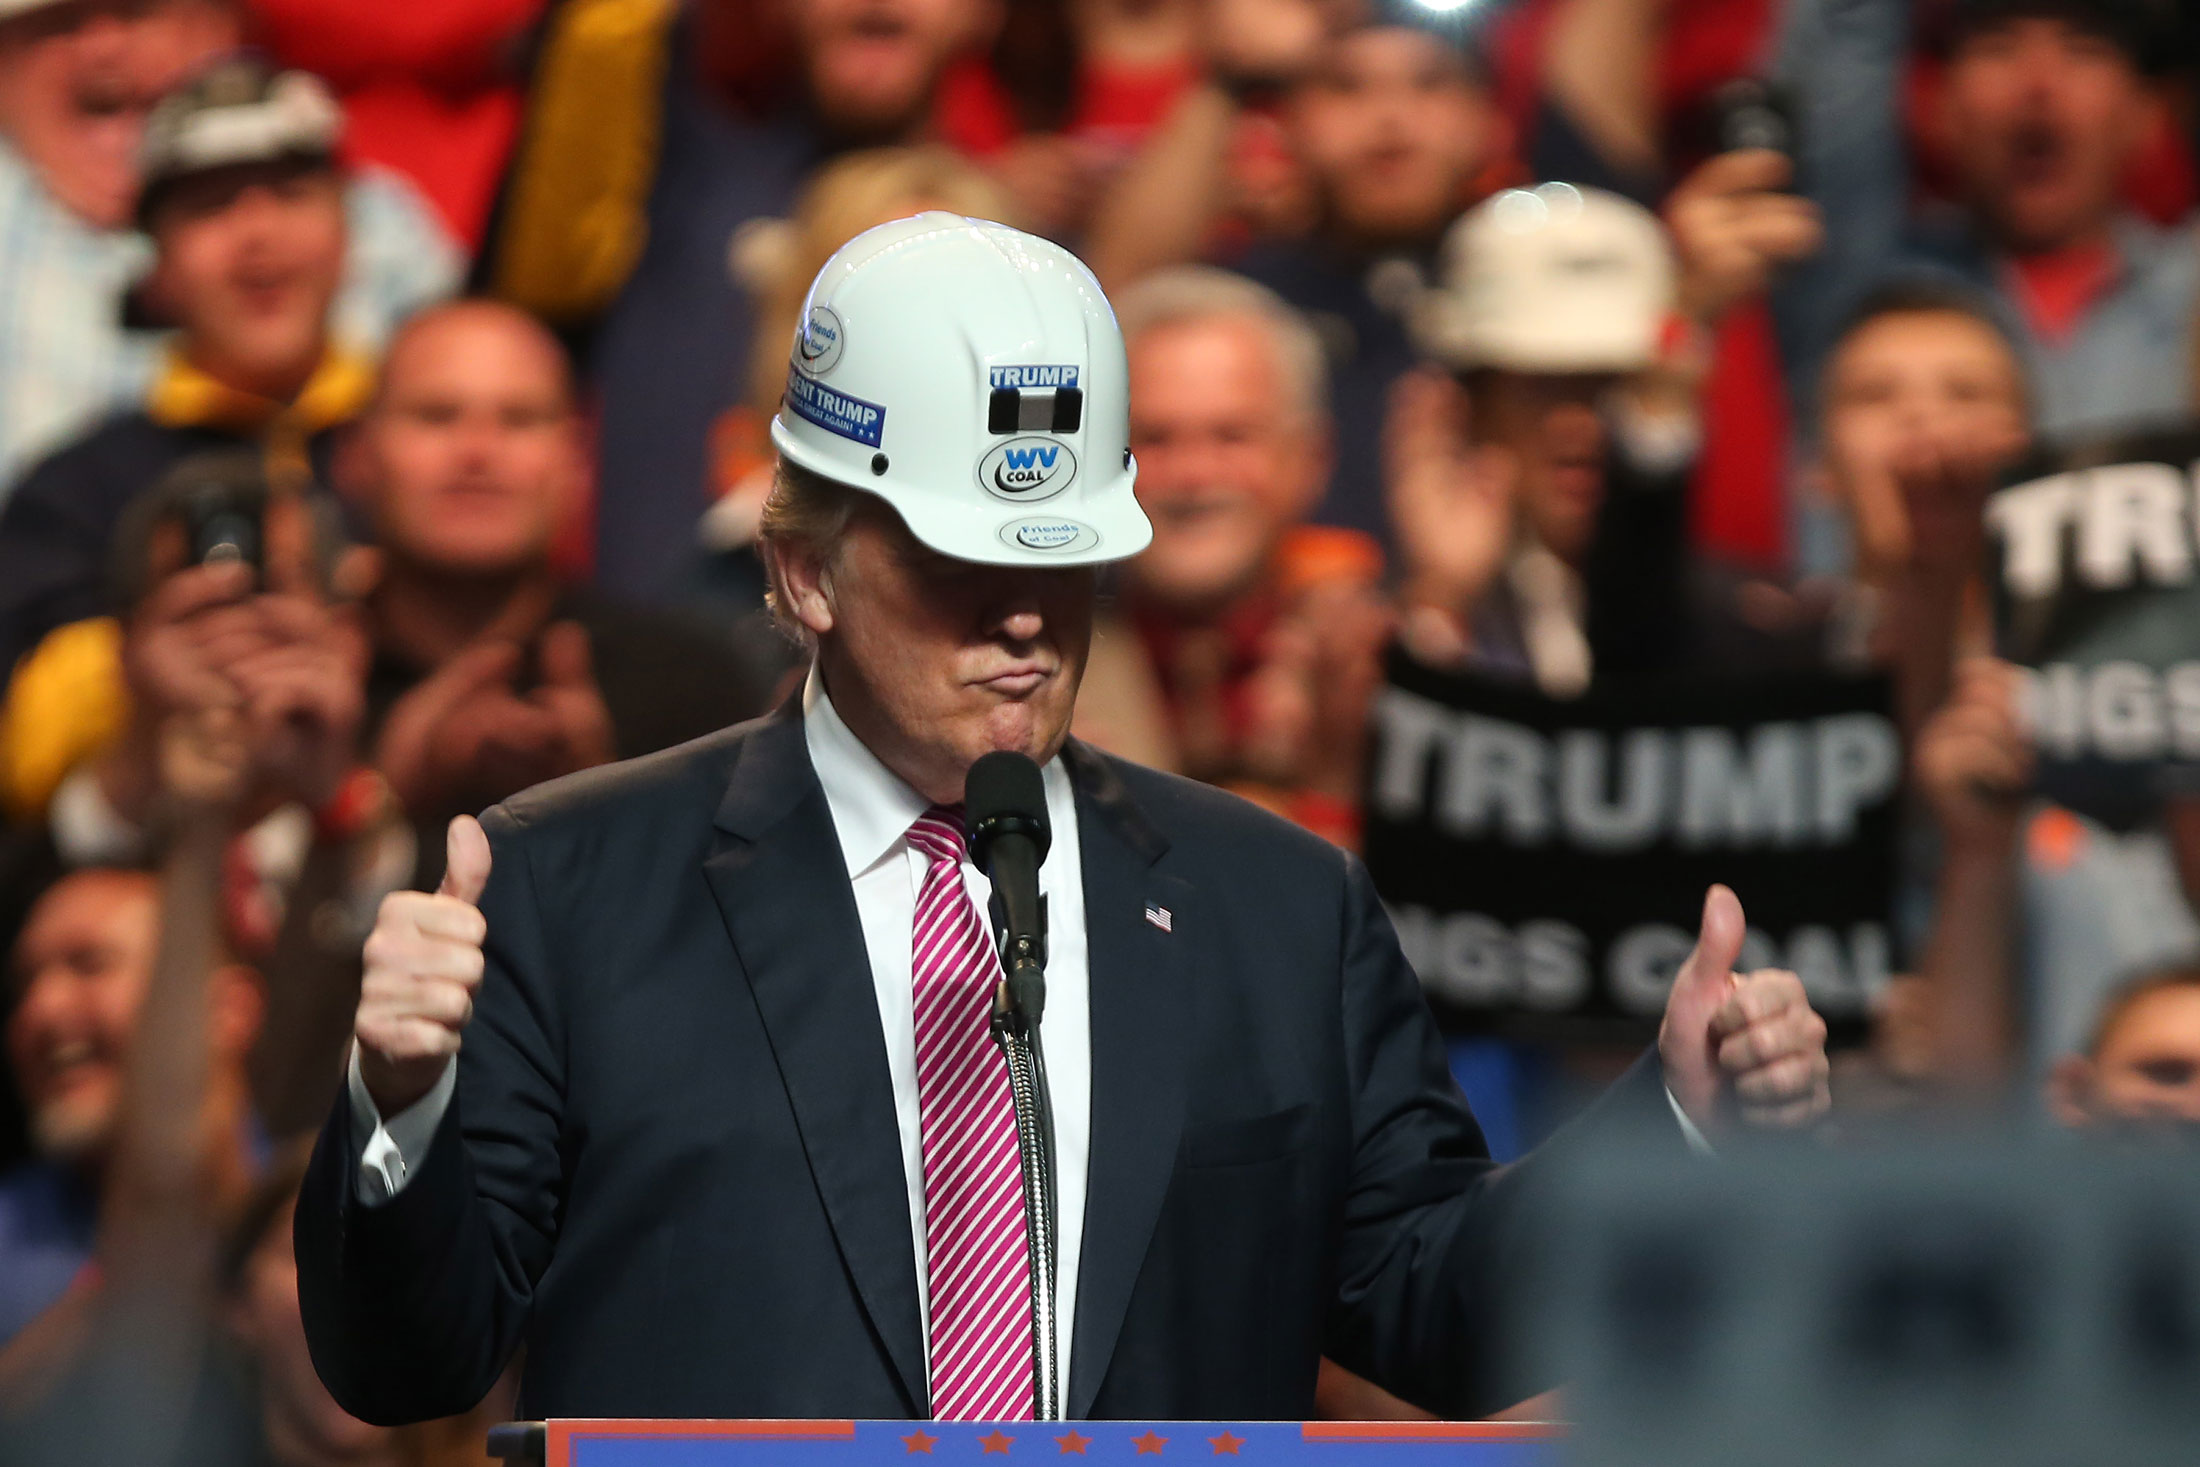 Donald Trump models a hard hat in support of miners during a rally at the Charleston Civic Center in Charleston, West Virginia.